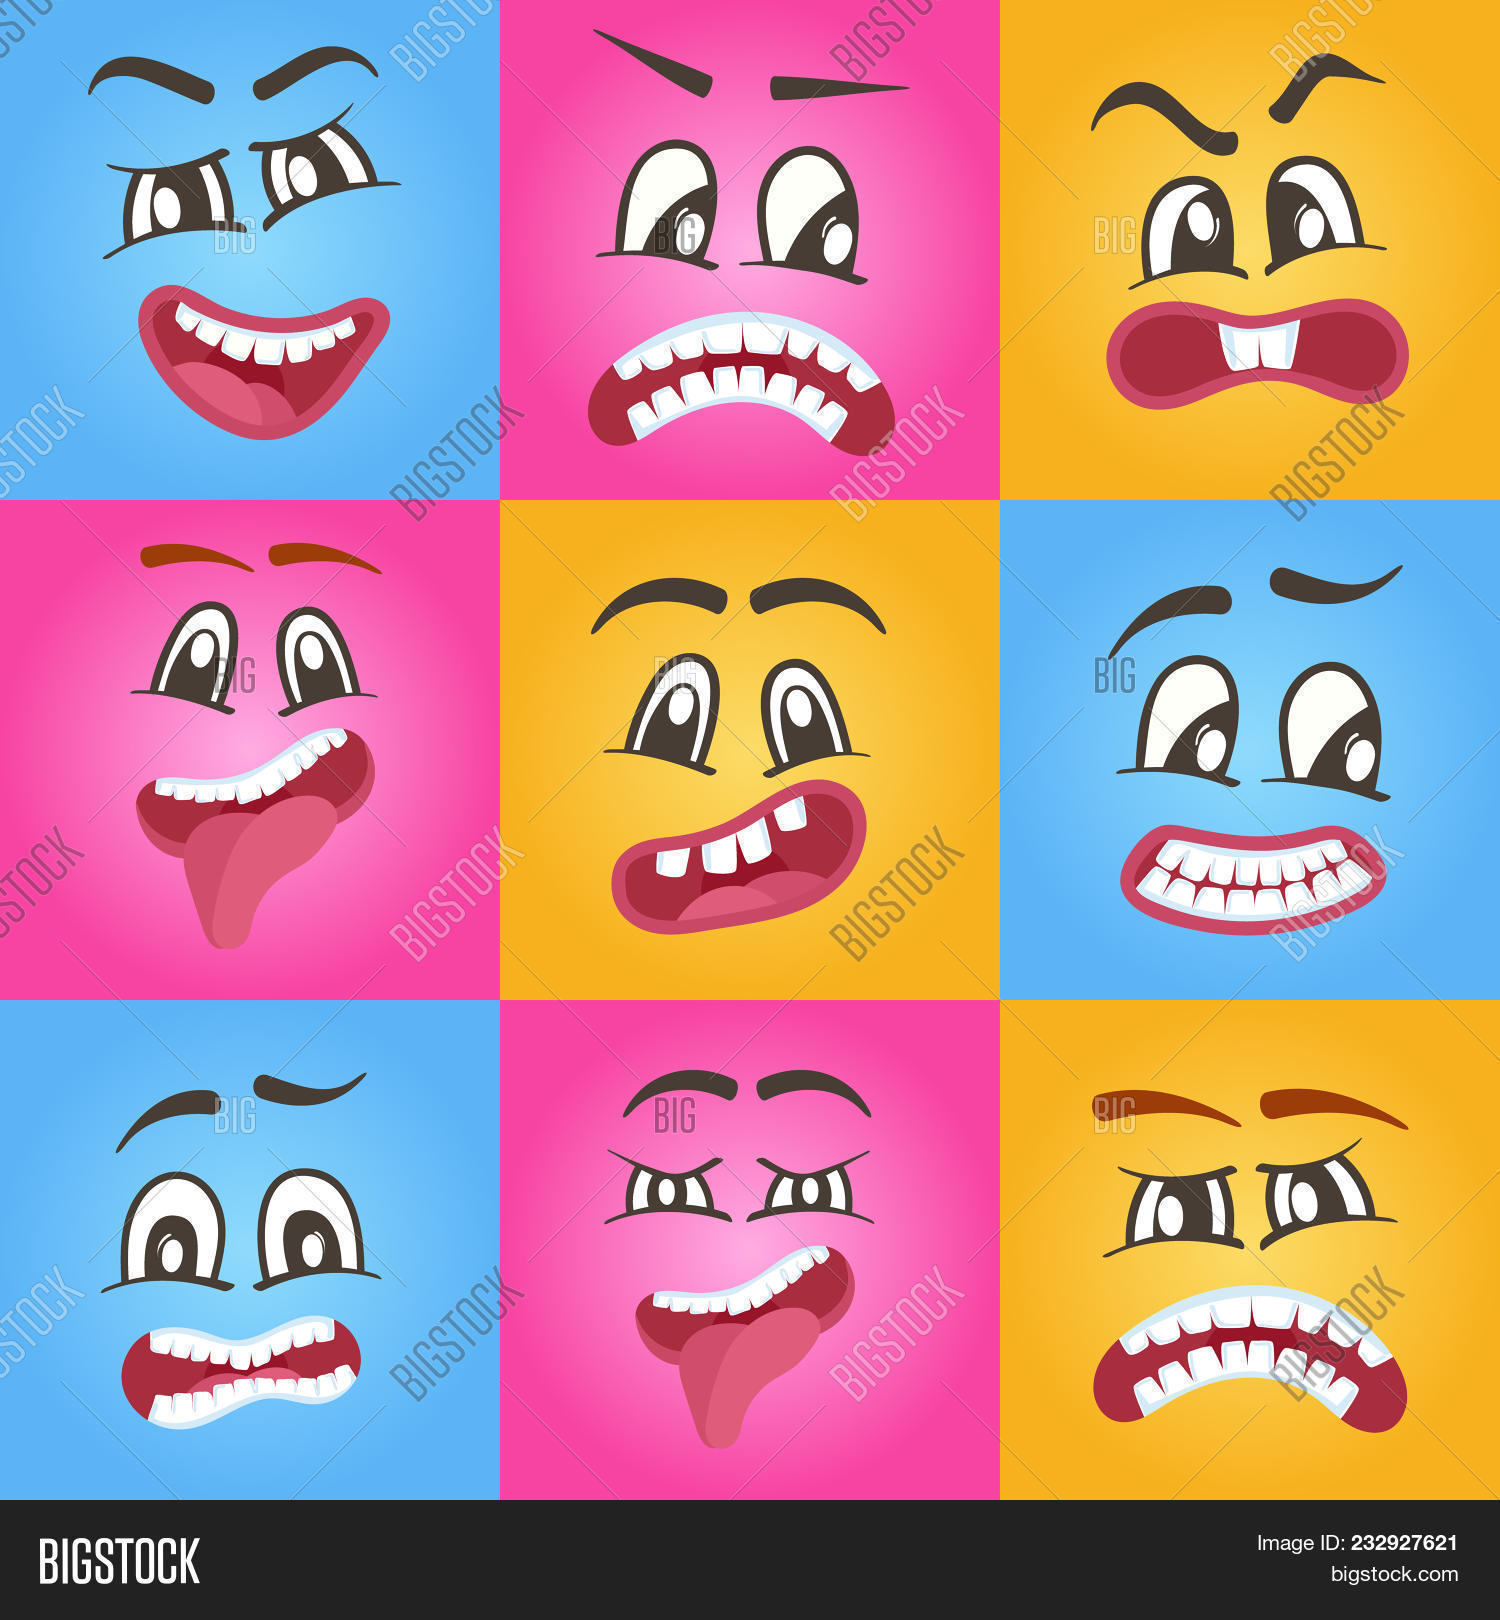 Funny Smileys Faces Image Photo Free Trial Bigstock